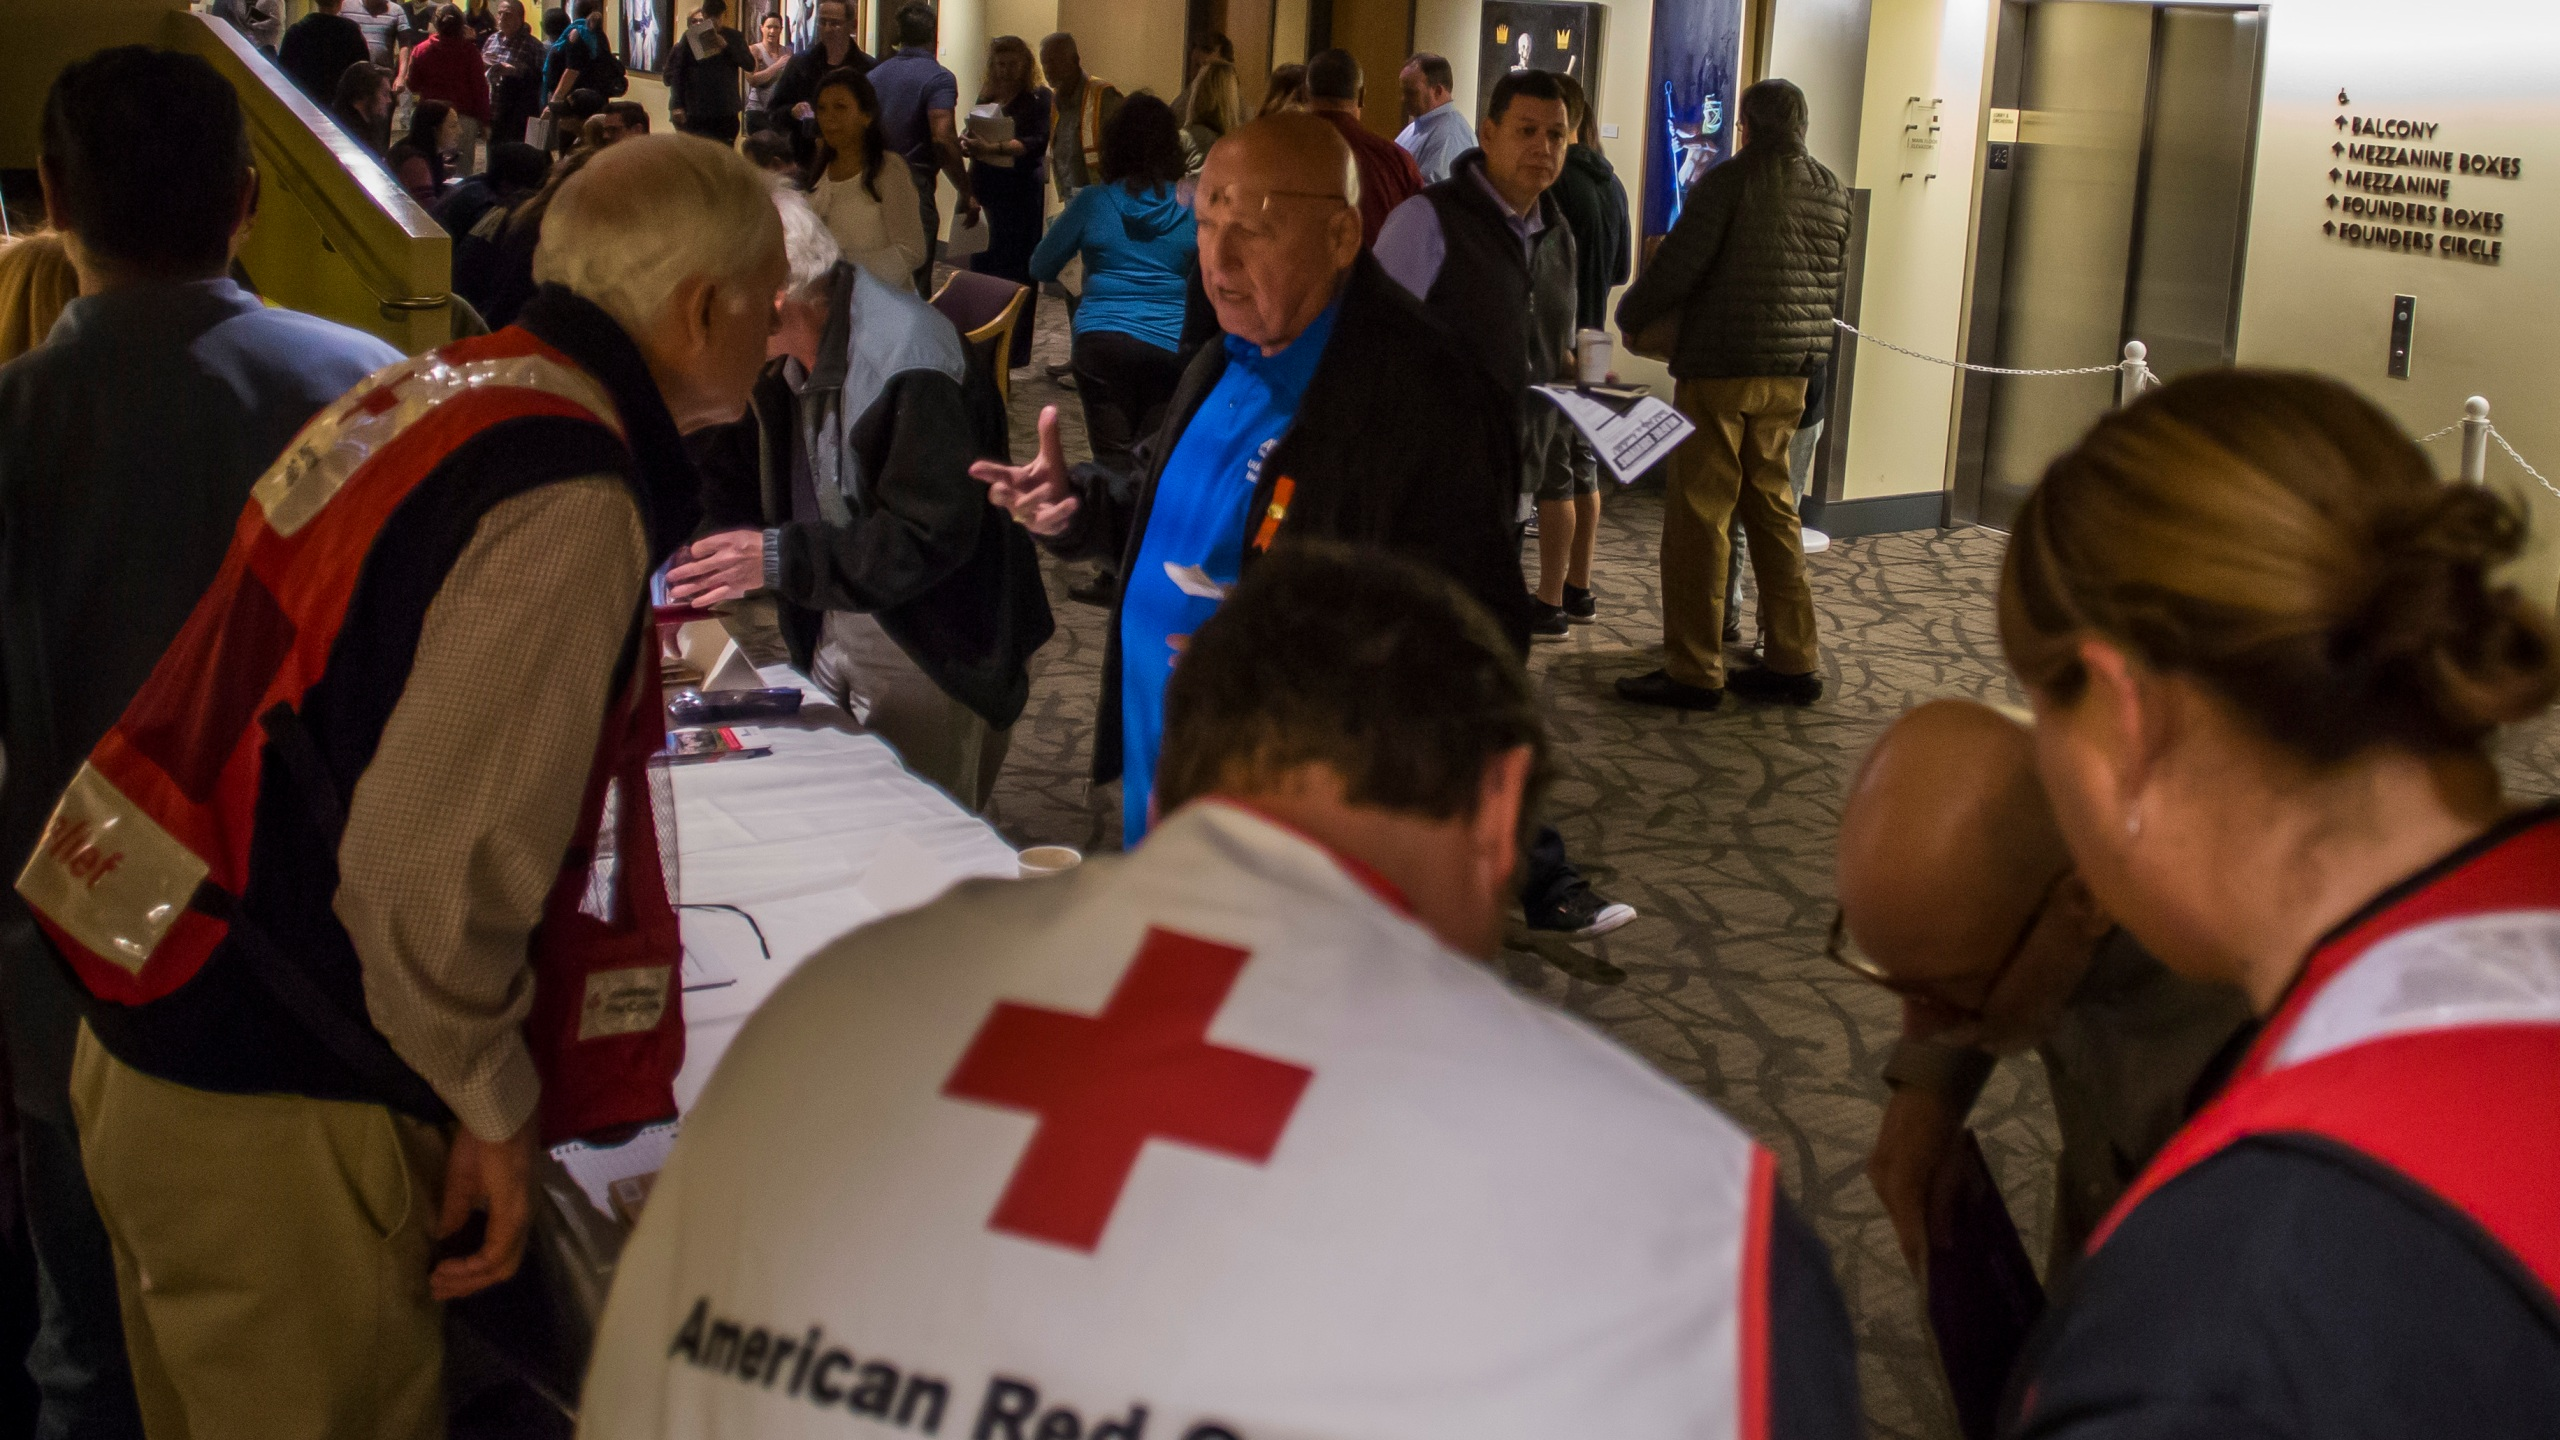 Members of the American Red Cross speak to wildfire victims at a town hall in Thousand Oaks on Nov. 14, 2018. (Credit: Apu Gomes / AFP / Getty Images)